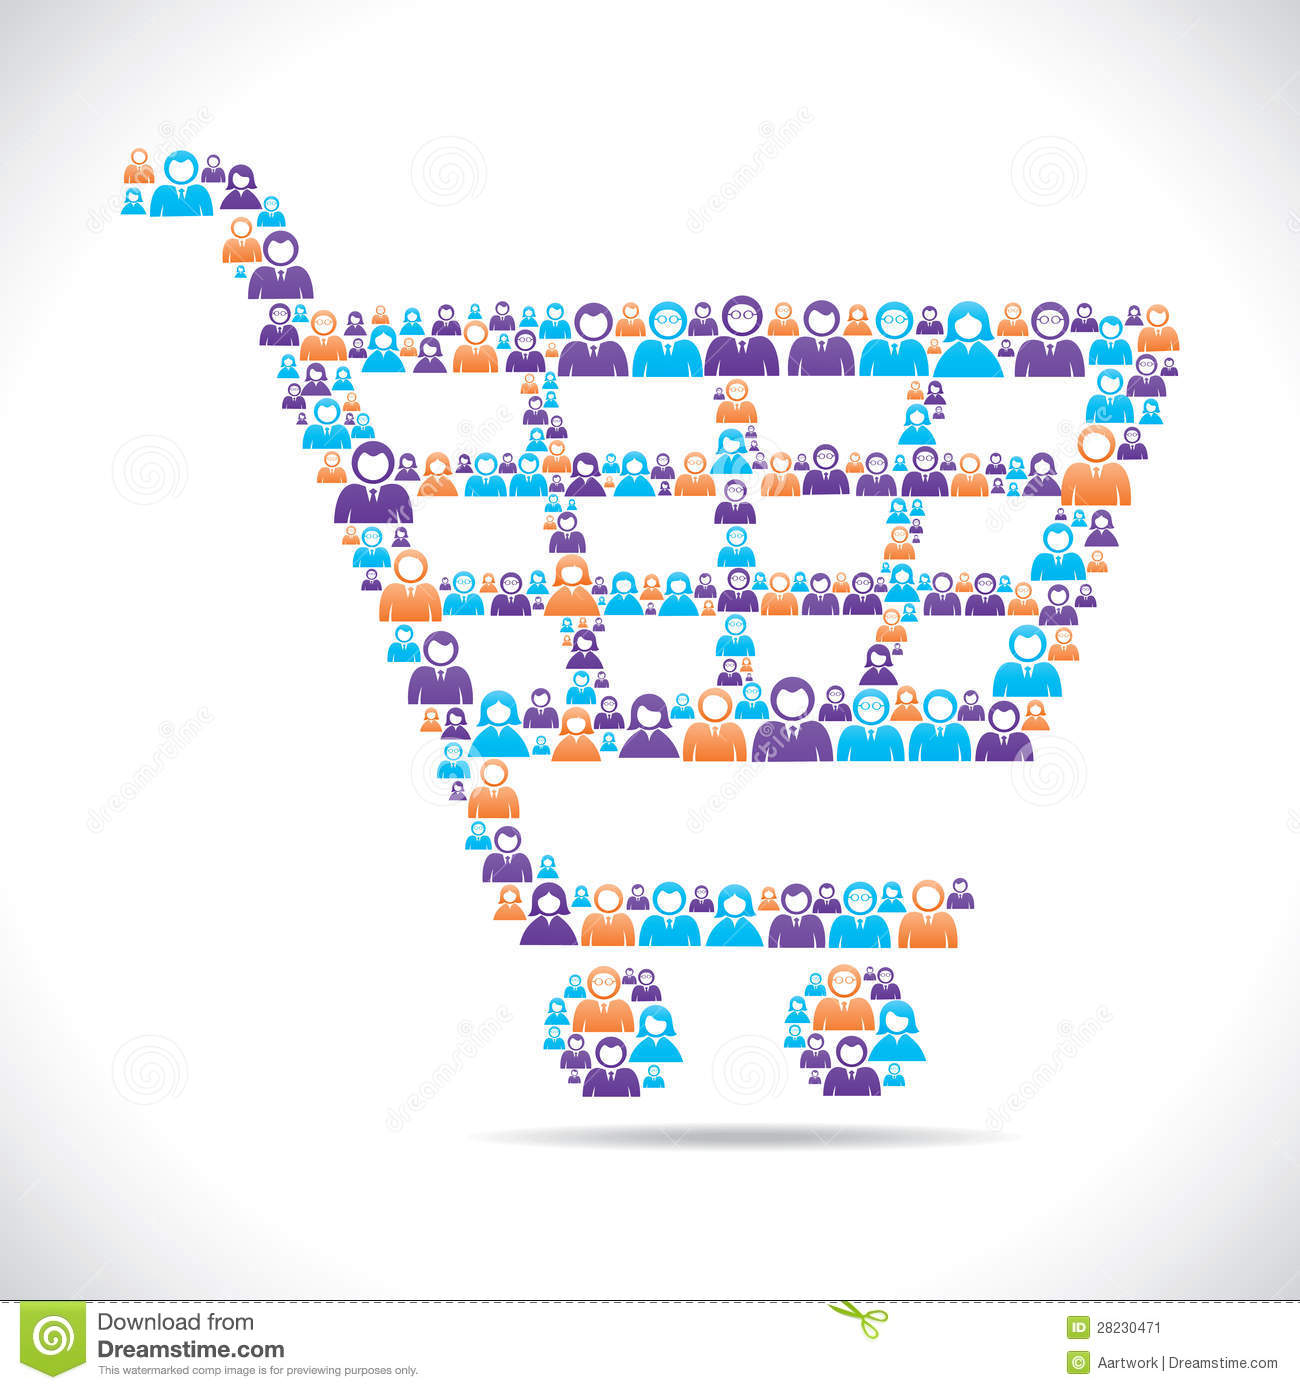 Online shopping cart design with people stock vector for Onlineshop design mobel